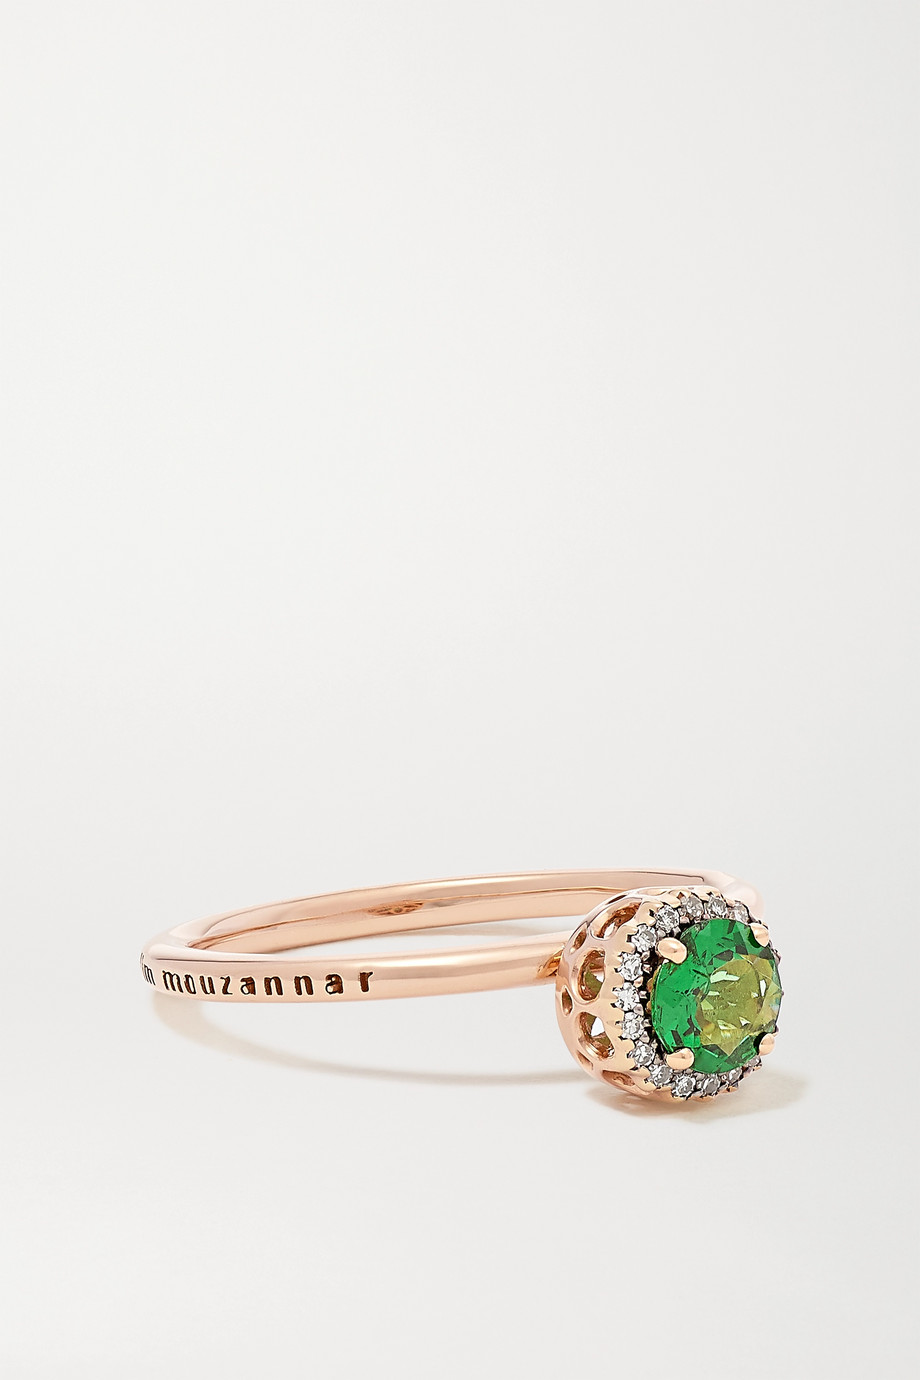 SELIM MOUZANNAR Beirut Basic 18-karat rose gold, tsavorite and diamond ring